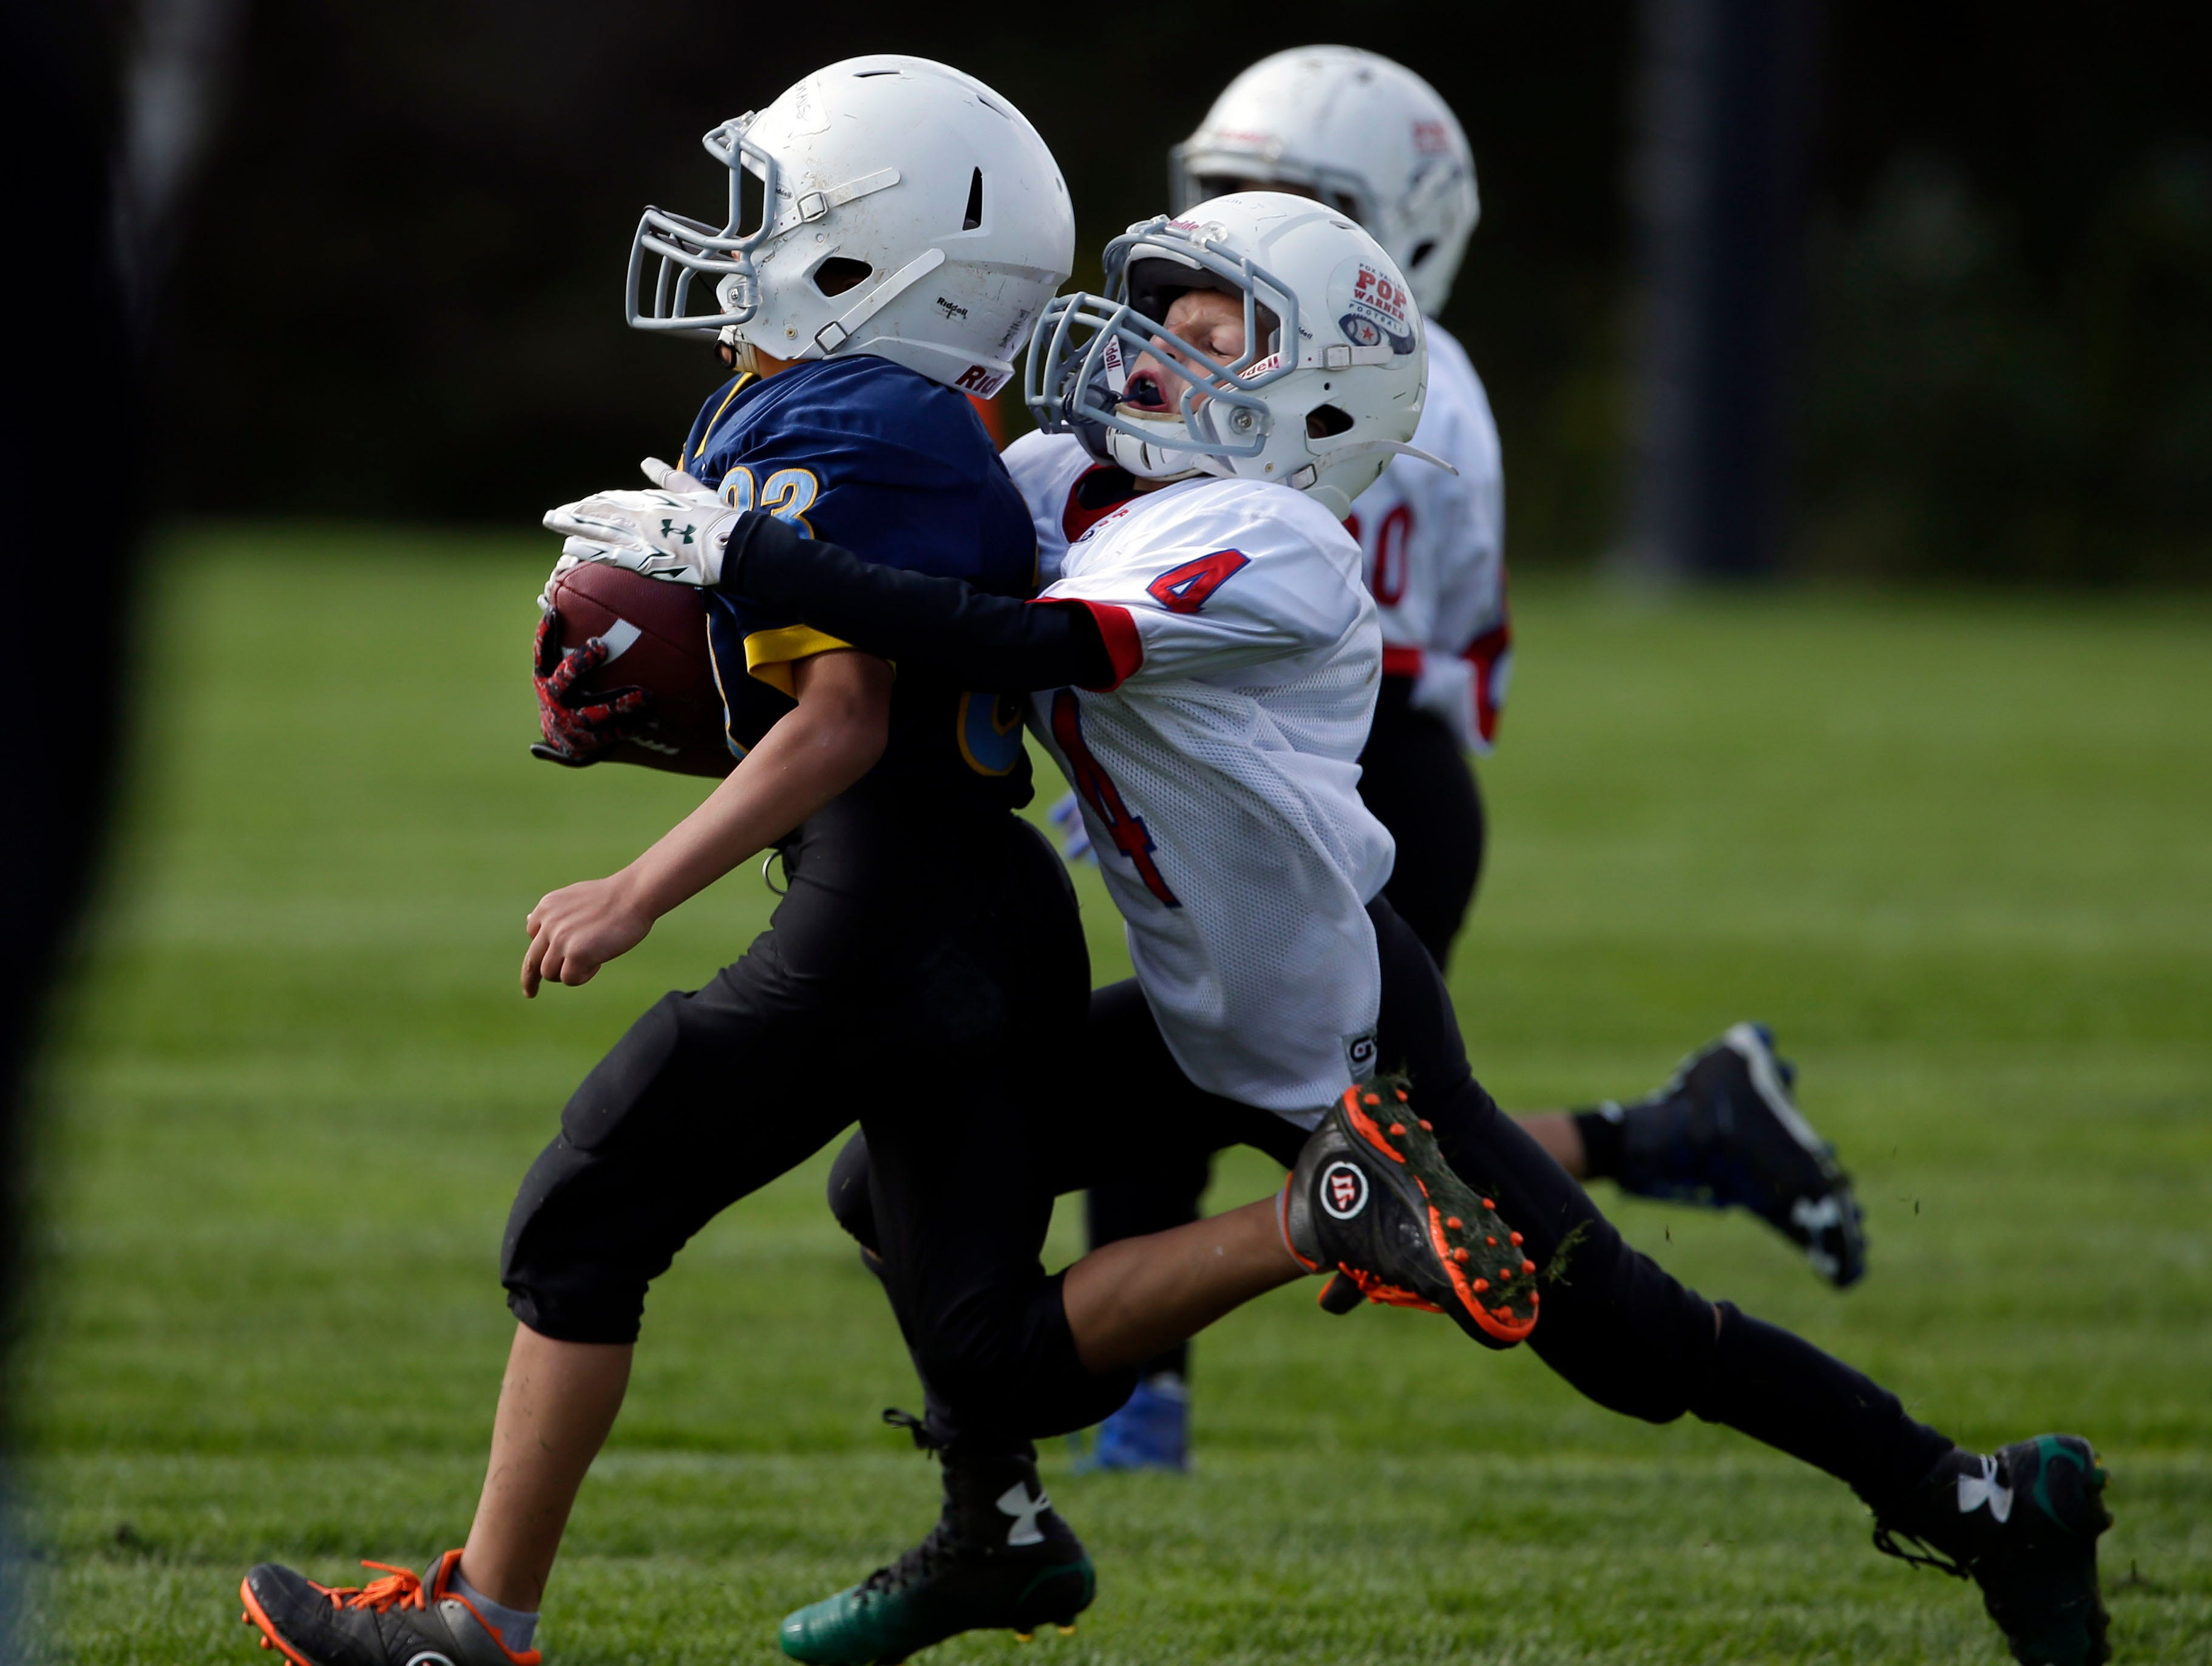 Samuel Gloudemans of the Pioneers is tackled by Rylan Jochimsen of the Titans as Fox Valley Pop Warner Football opens the season Saturday, September 8, 2018, at Plamann Park in Grand Chute, Wis.Ron Page/USA TODAY NETWORK-Wisconsin